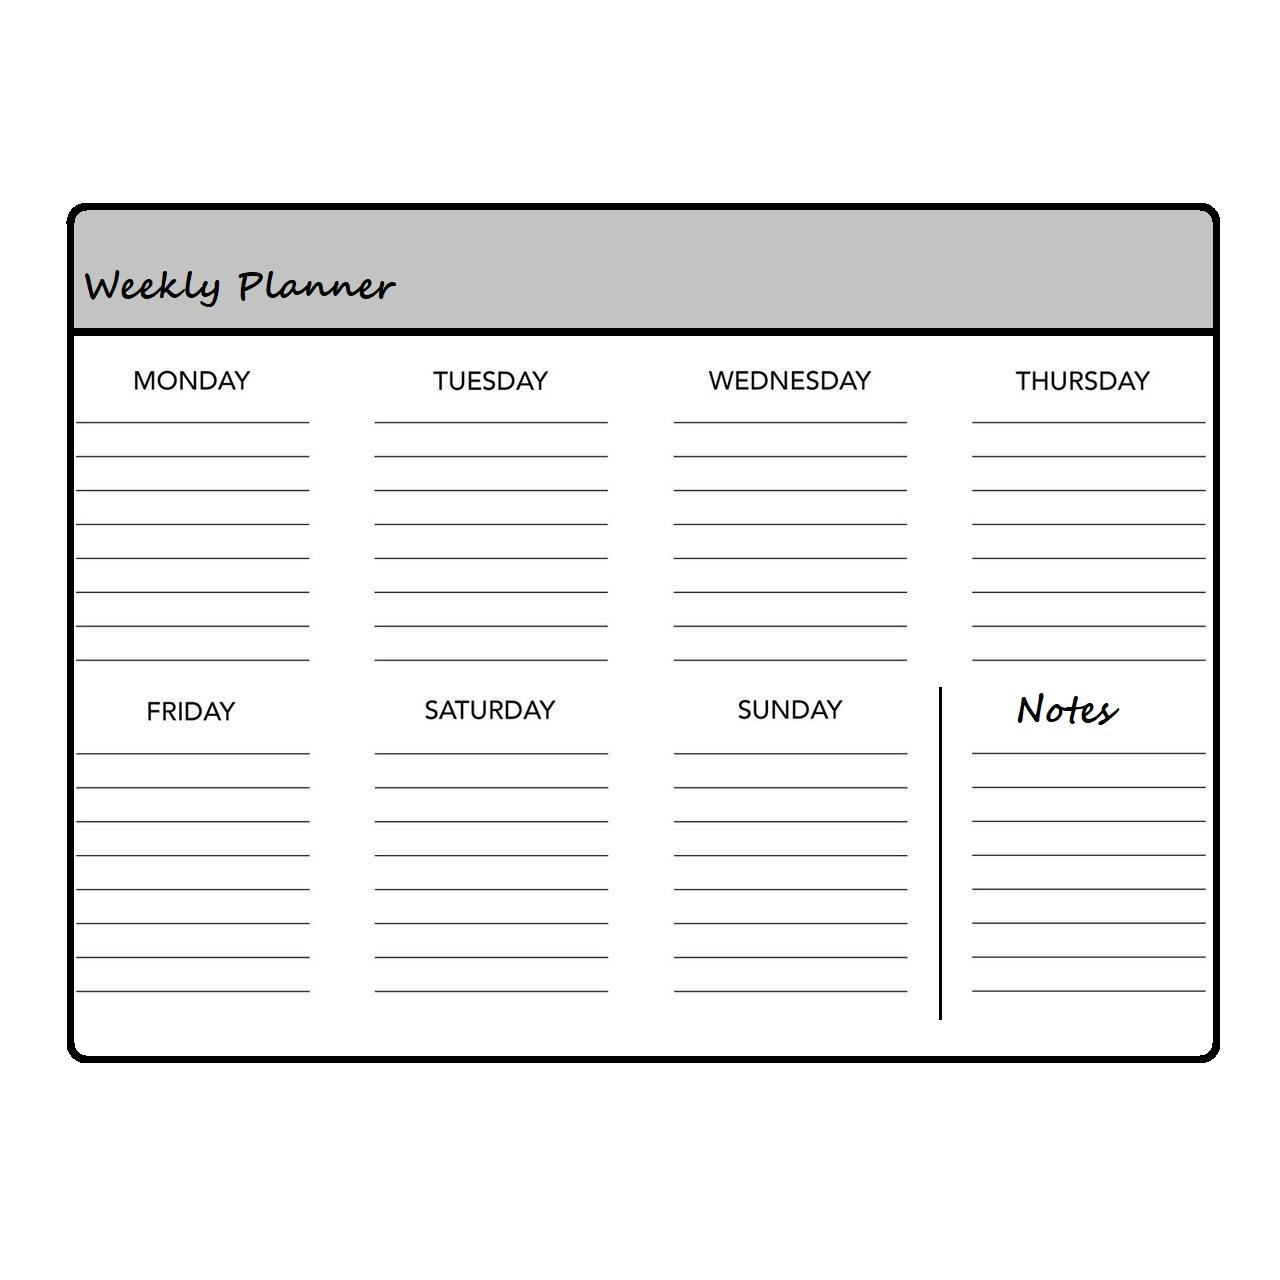 Printable Weekly Planners | Teaching Resources within Weekly Planner For Teachers